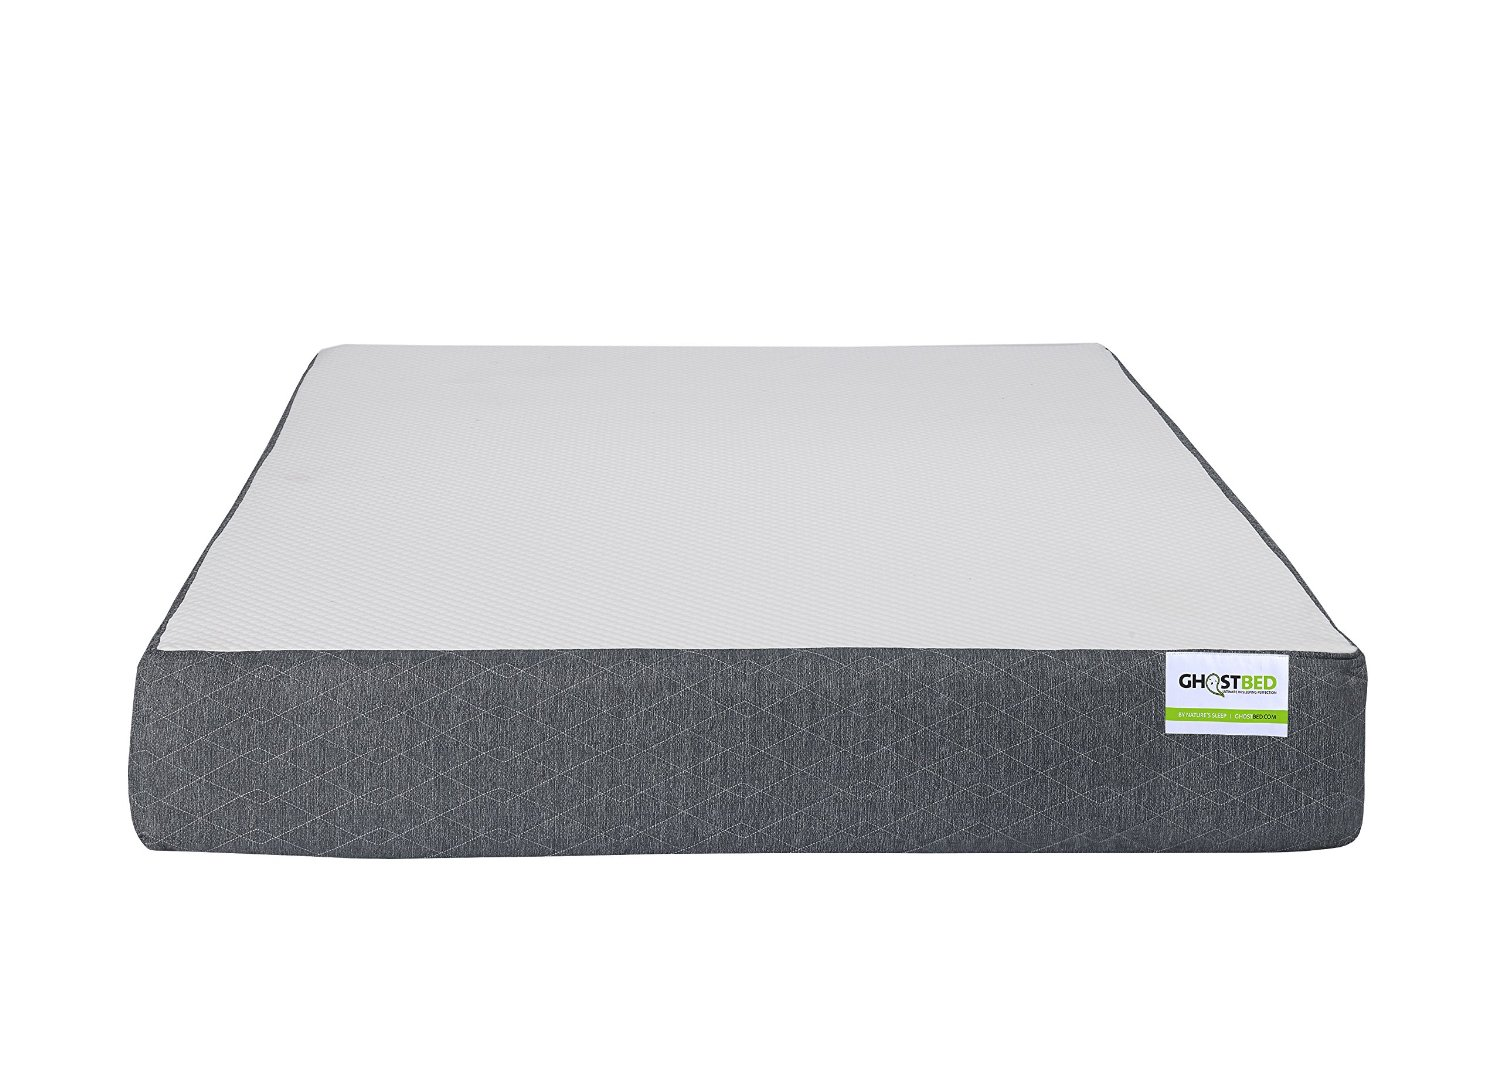 GhostBed Mattress Review, ghostbed mattress reviews, girl on the mattress